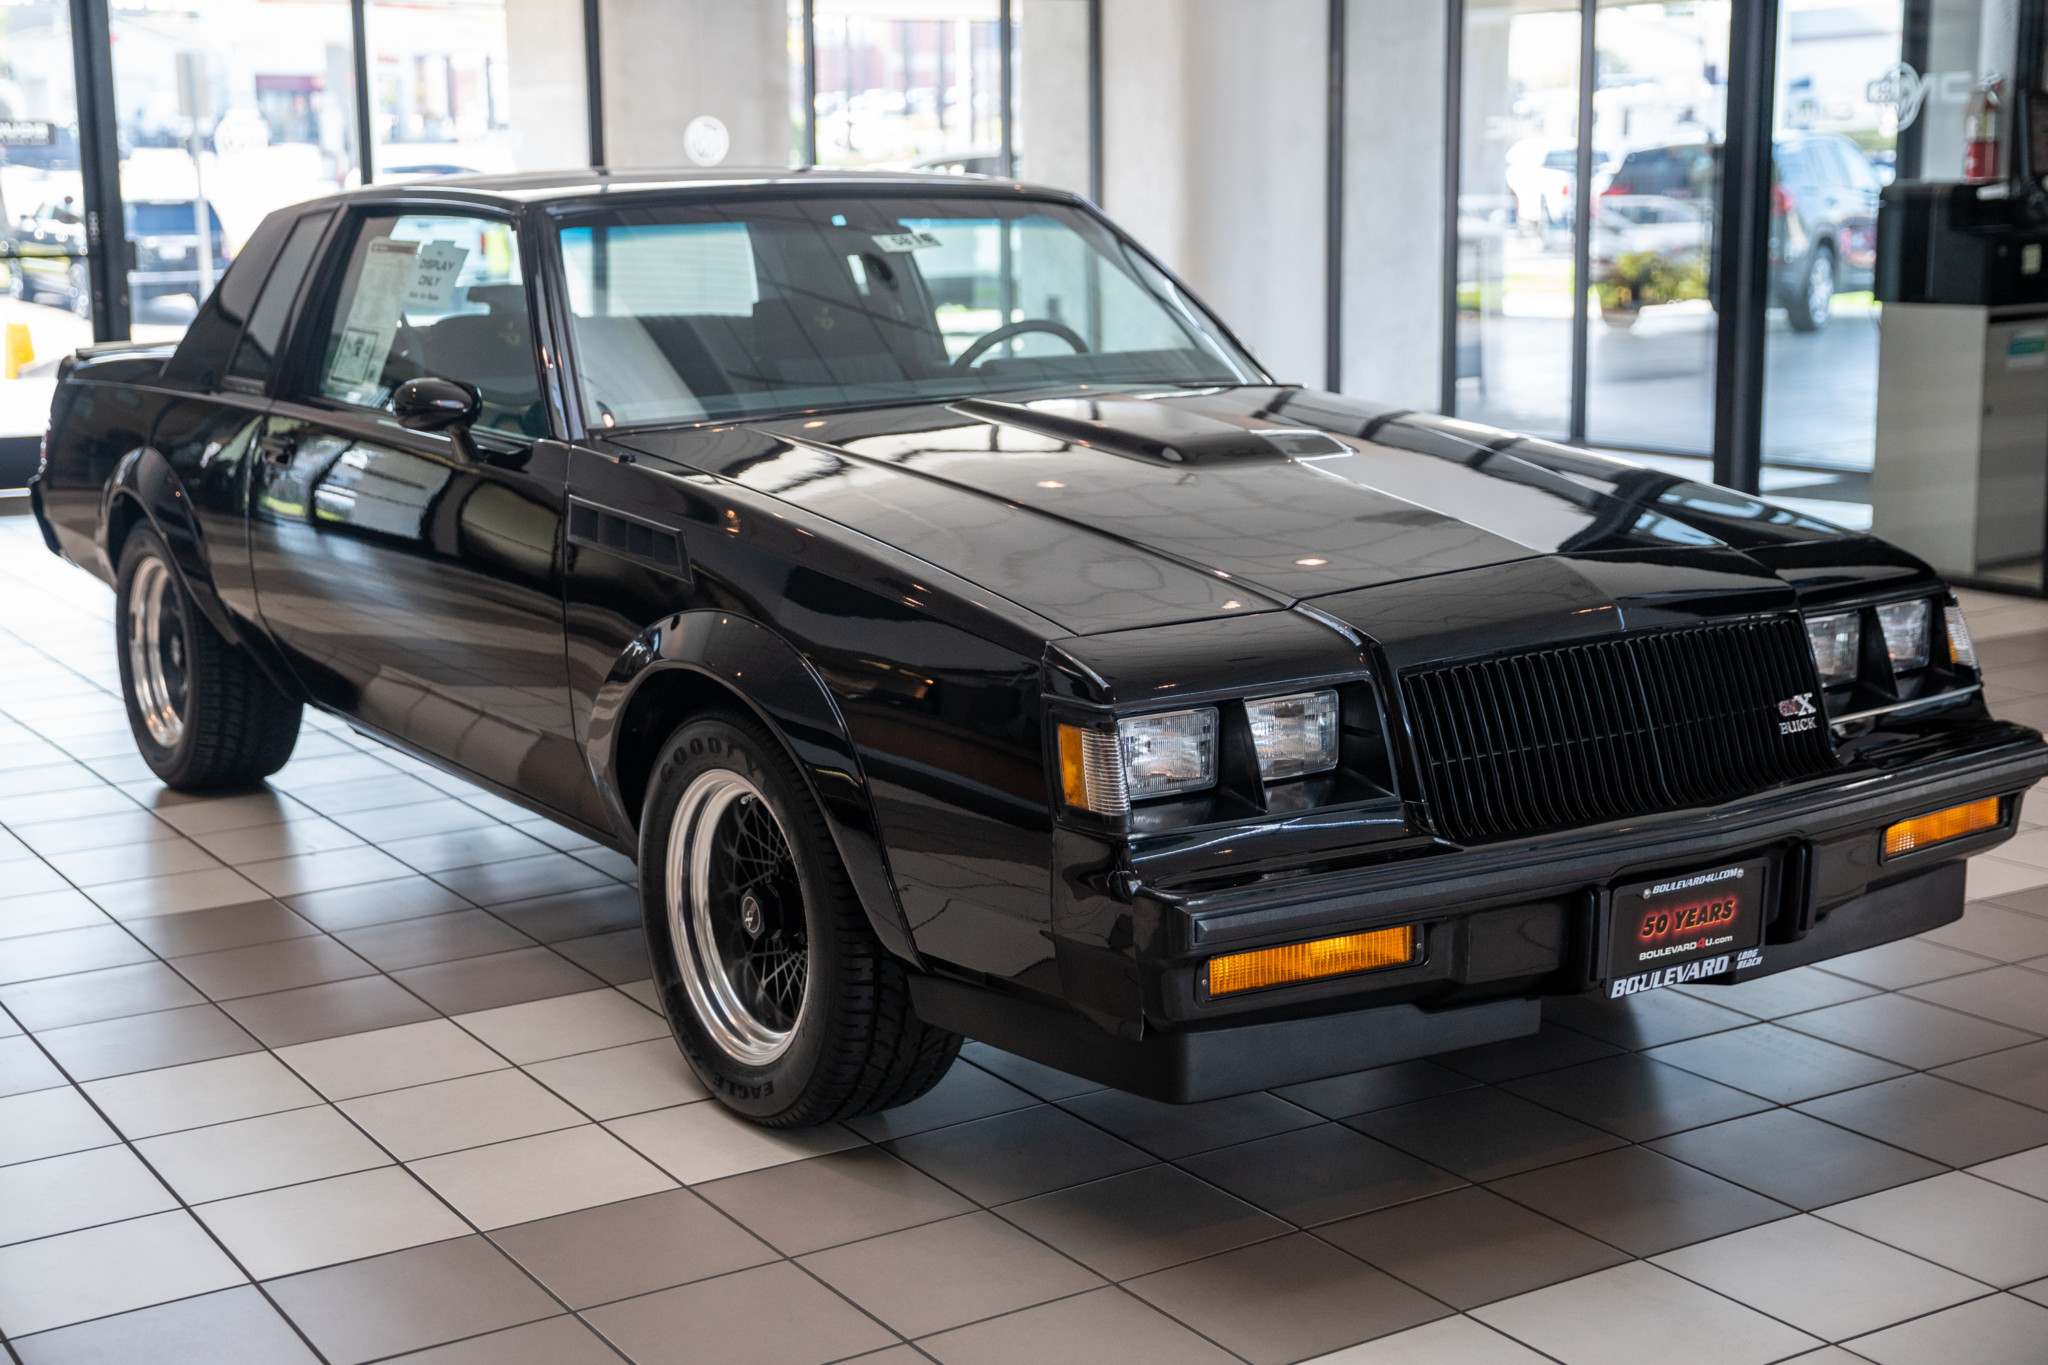 Unsold Buick Gnx With 202 Miles Now For Sale On Bring A Trailer